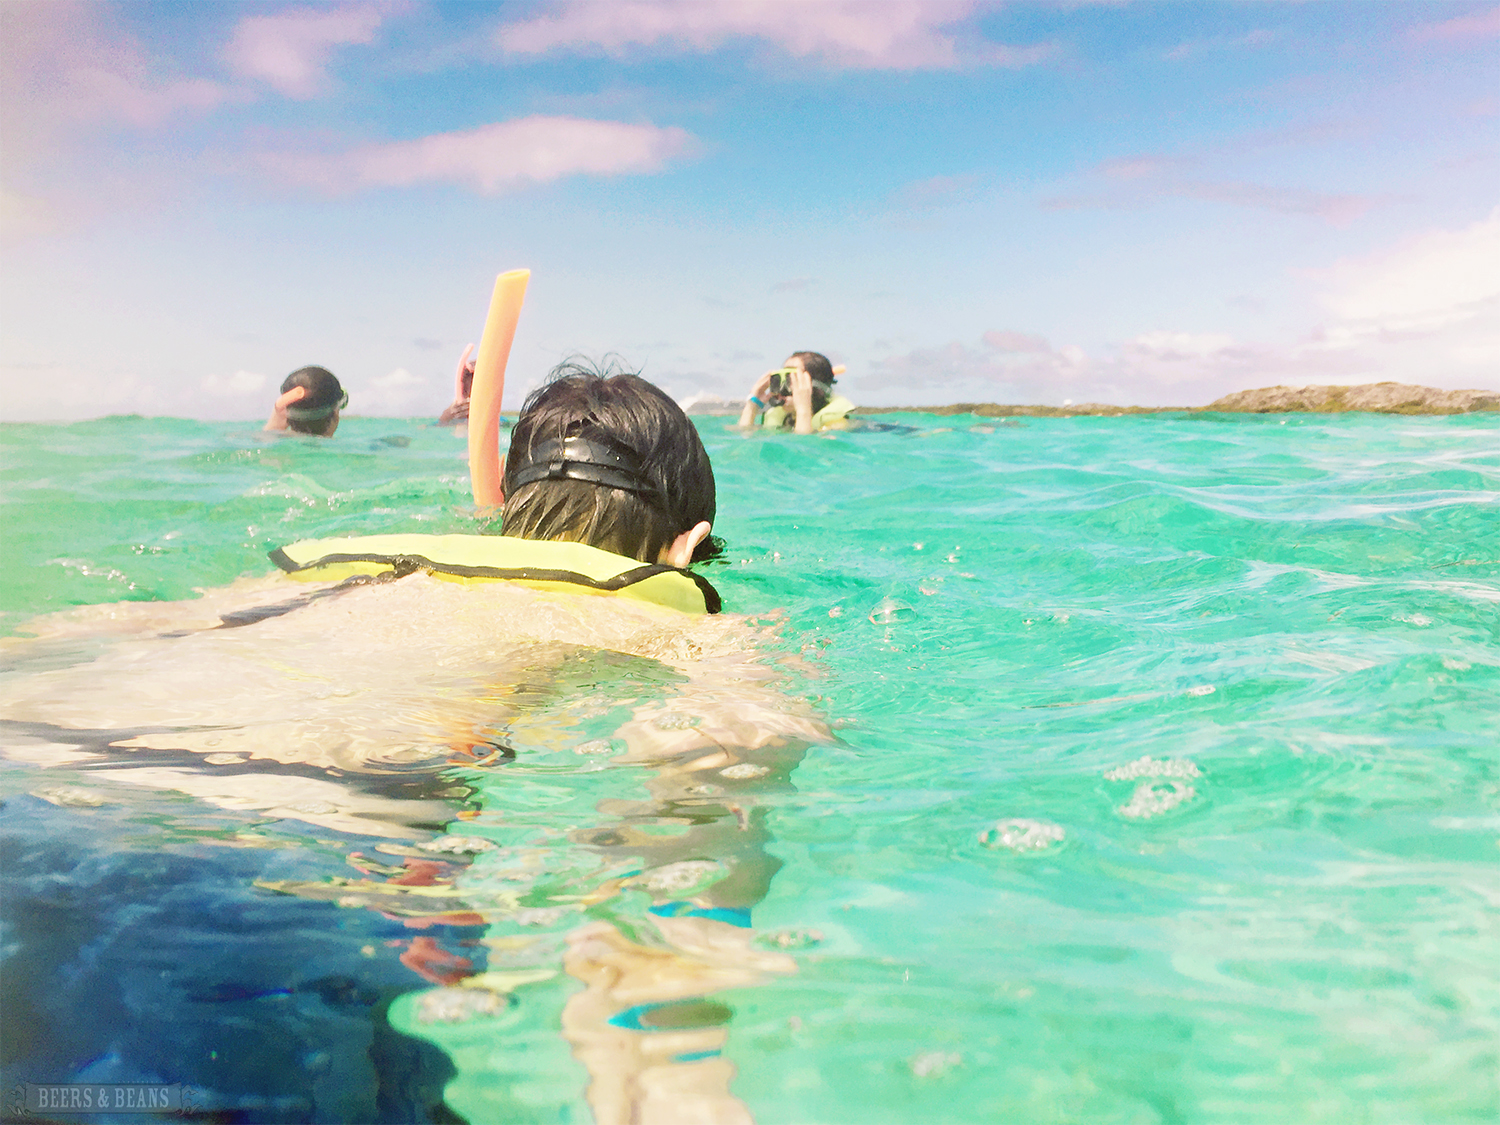 Randy Kalp, co-creator of the Speakeasy Travel Scarf, snorkeling in Grand Turk.